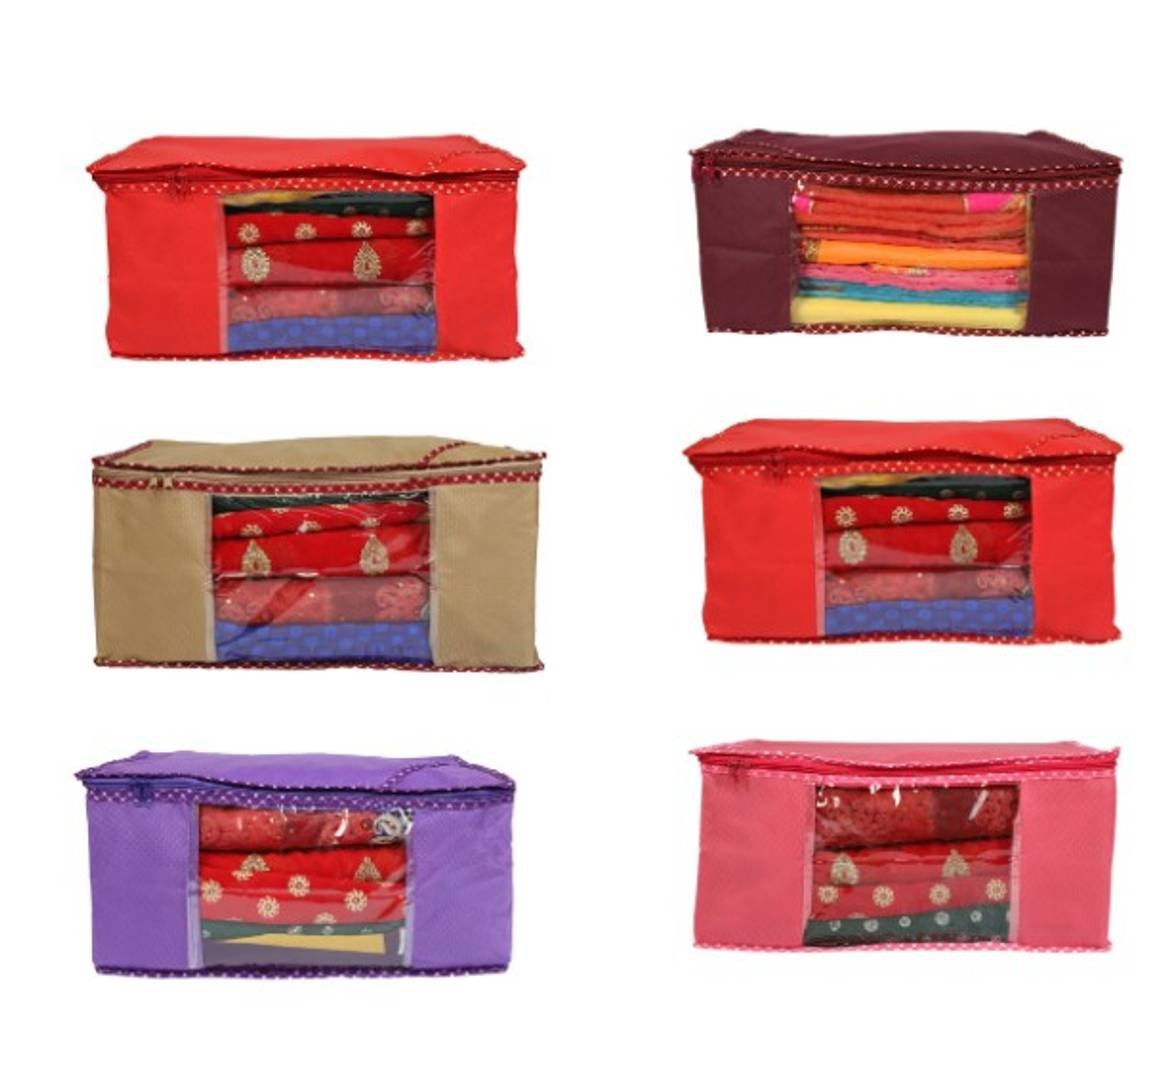 Trendy Non-Woven Saree Covers (Pack of 6)